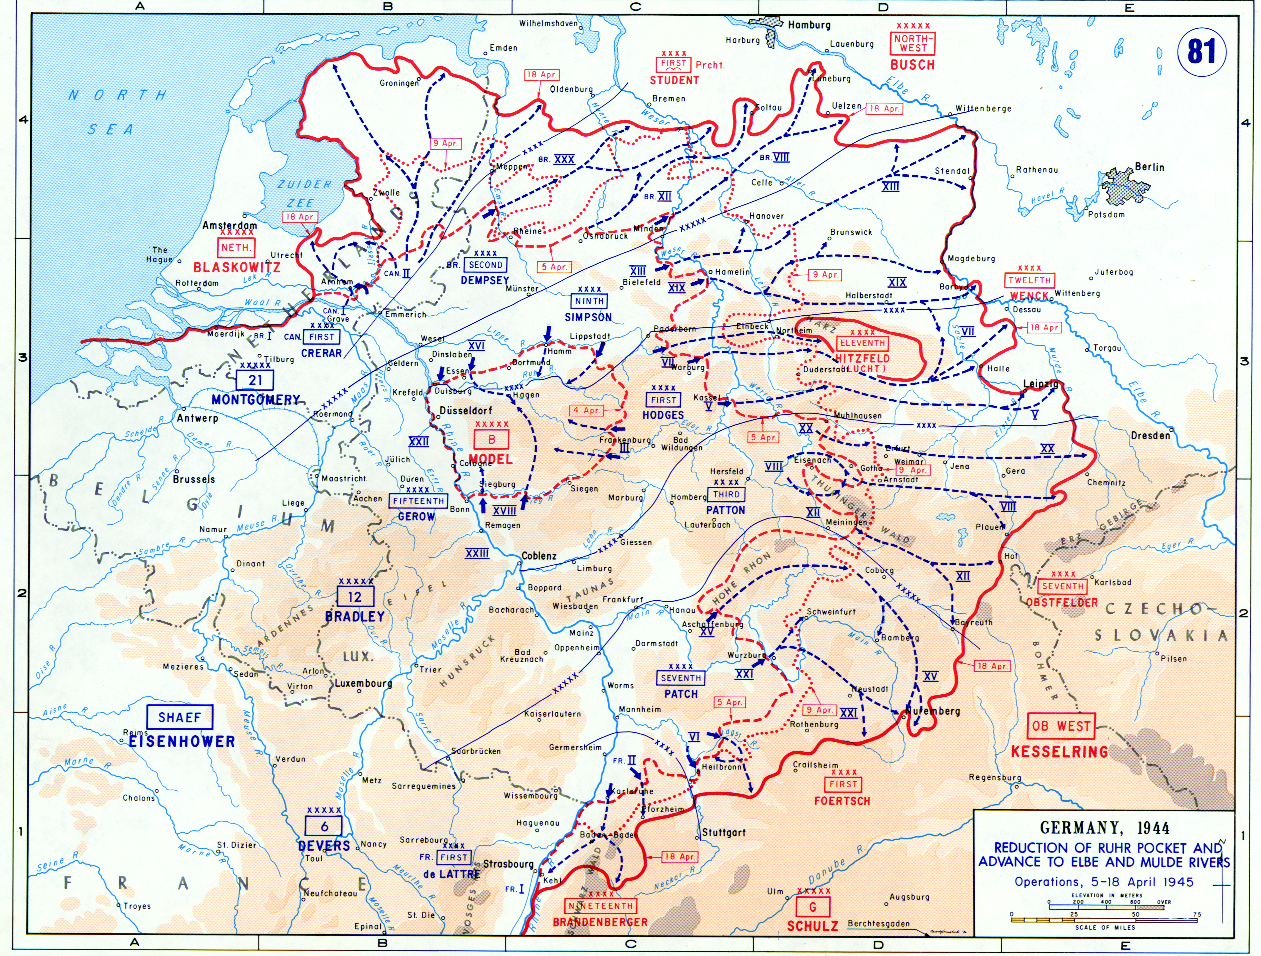 Map of Allied Advance to the Elbe and Mulde Rivers (April 1945)